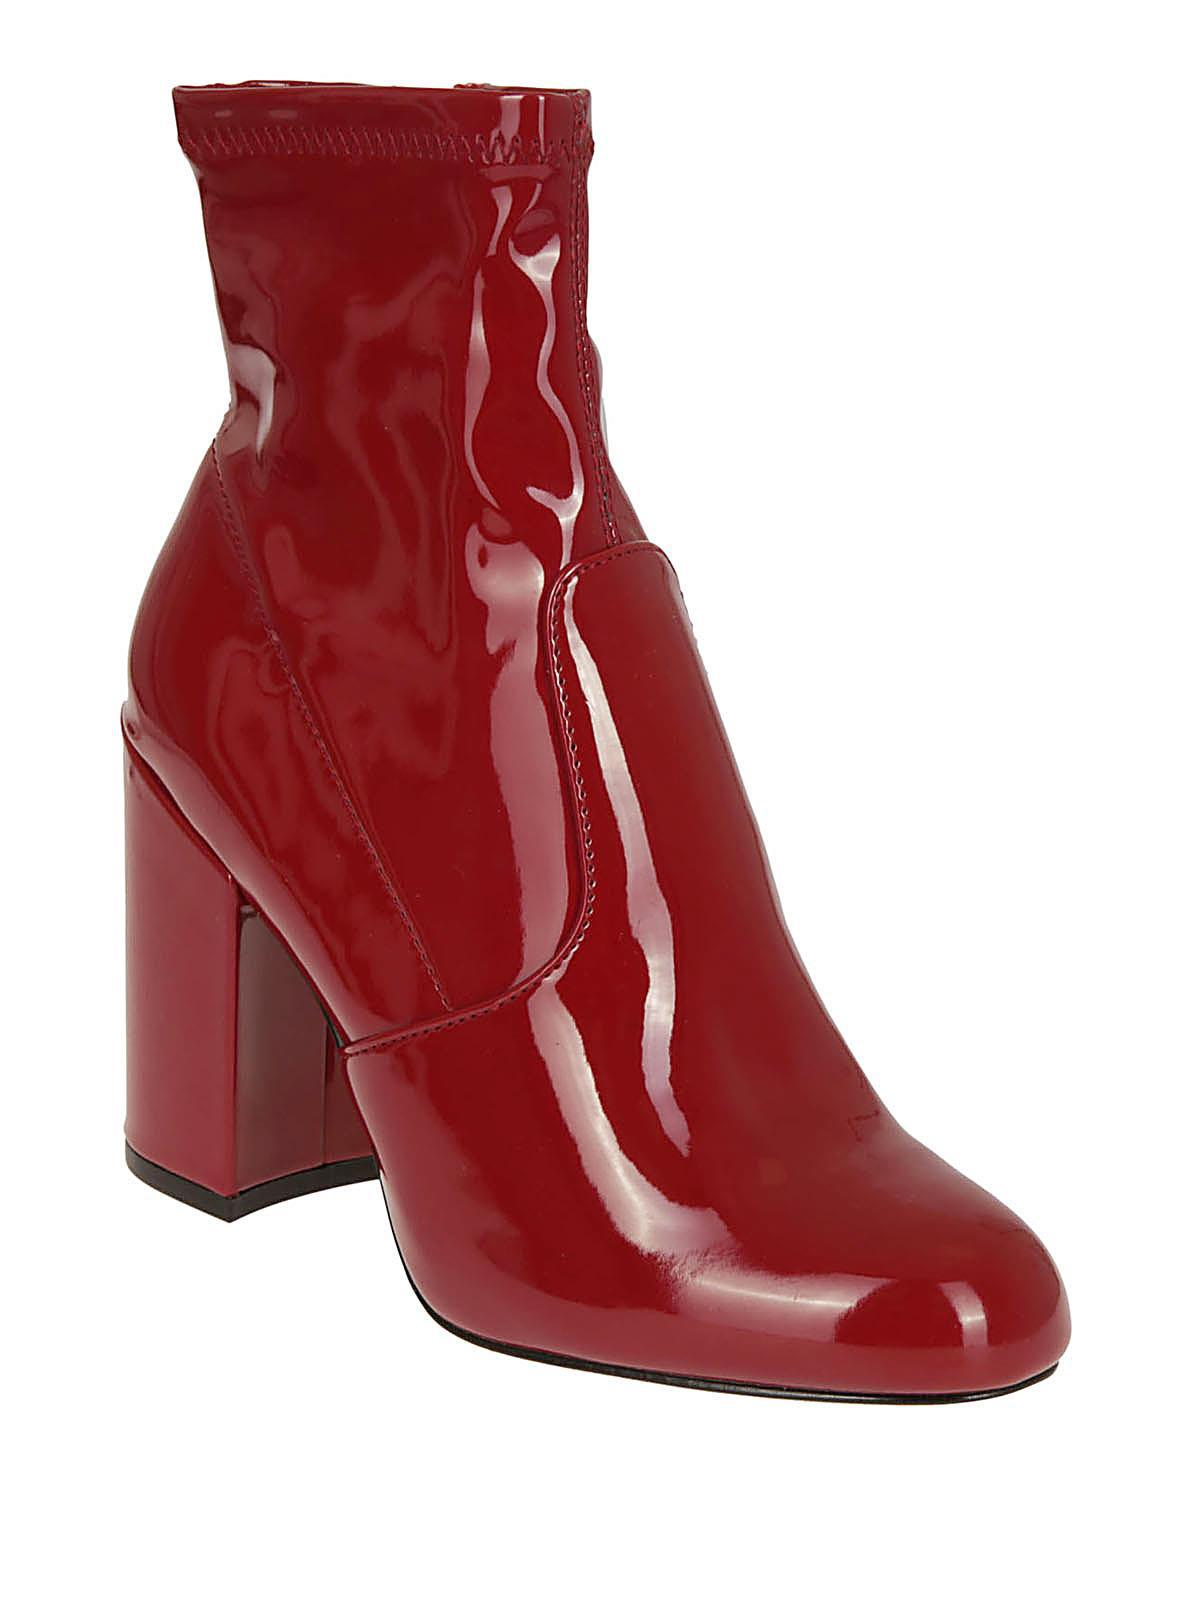 5051ebc87 Steve Madden Ankle Boots in Red - Save 46% - Lyst